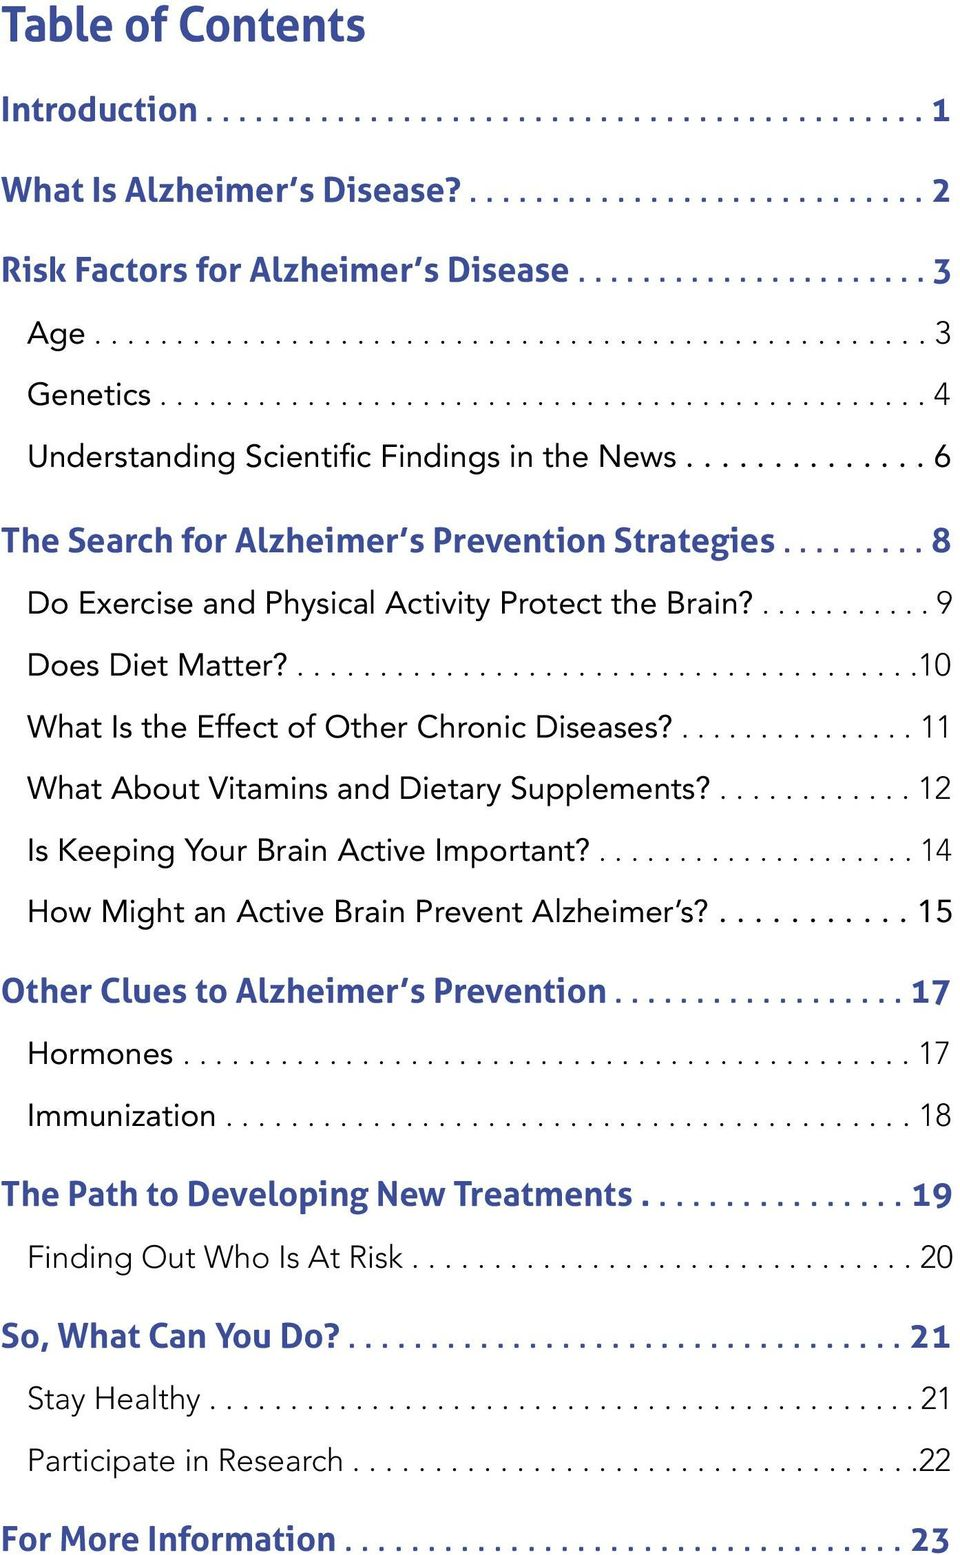 ............. 6 The Search for Alzheimer s Prevention Strategies......... 8 Do Exercise and Physical Activity Protect the Brain?........... 9 Does Diet Matter?